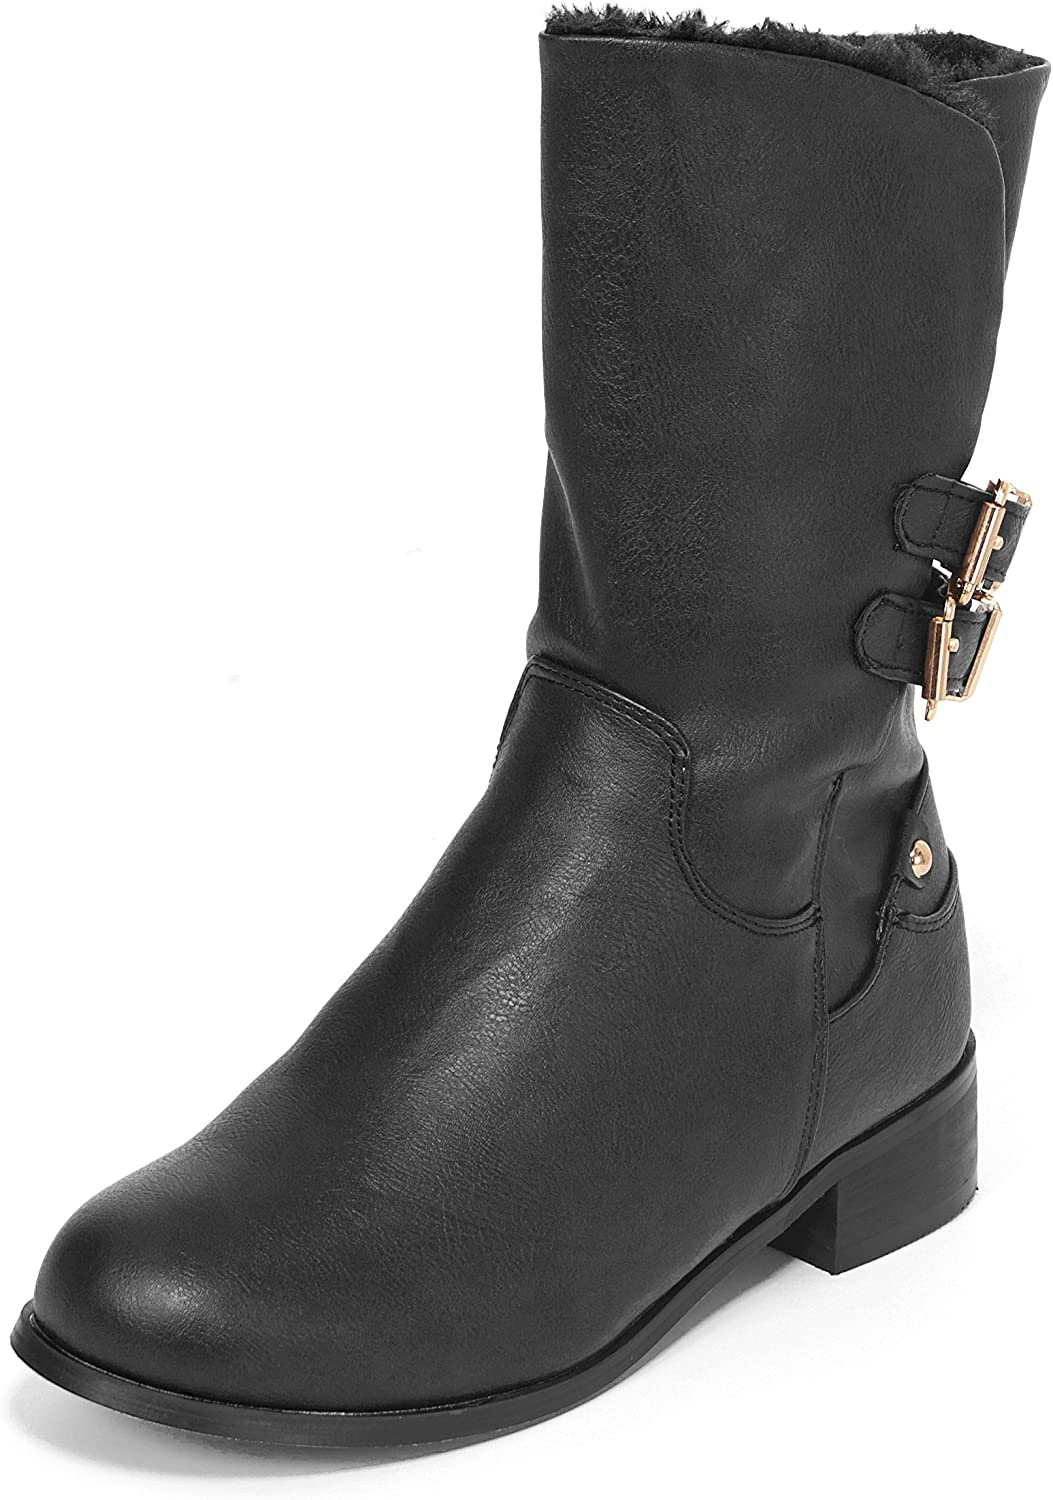 Junie's Women's Harley Faux Fur Lined Combat Motorcycle Boot